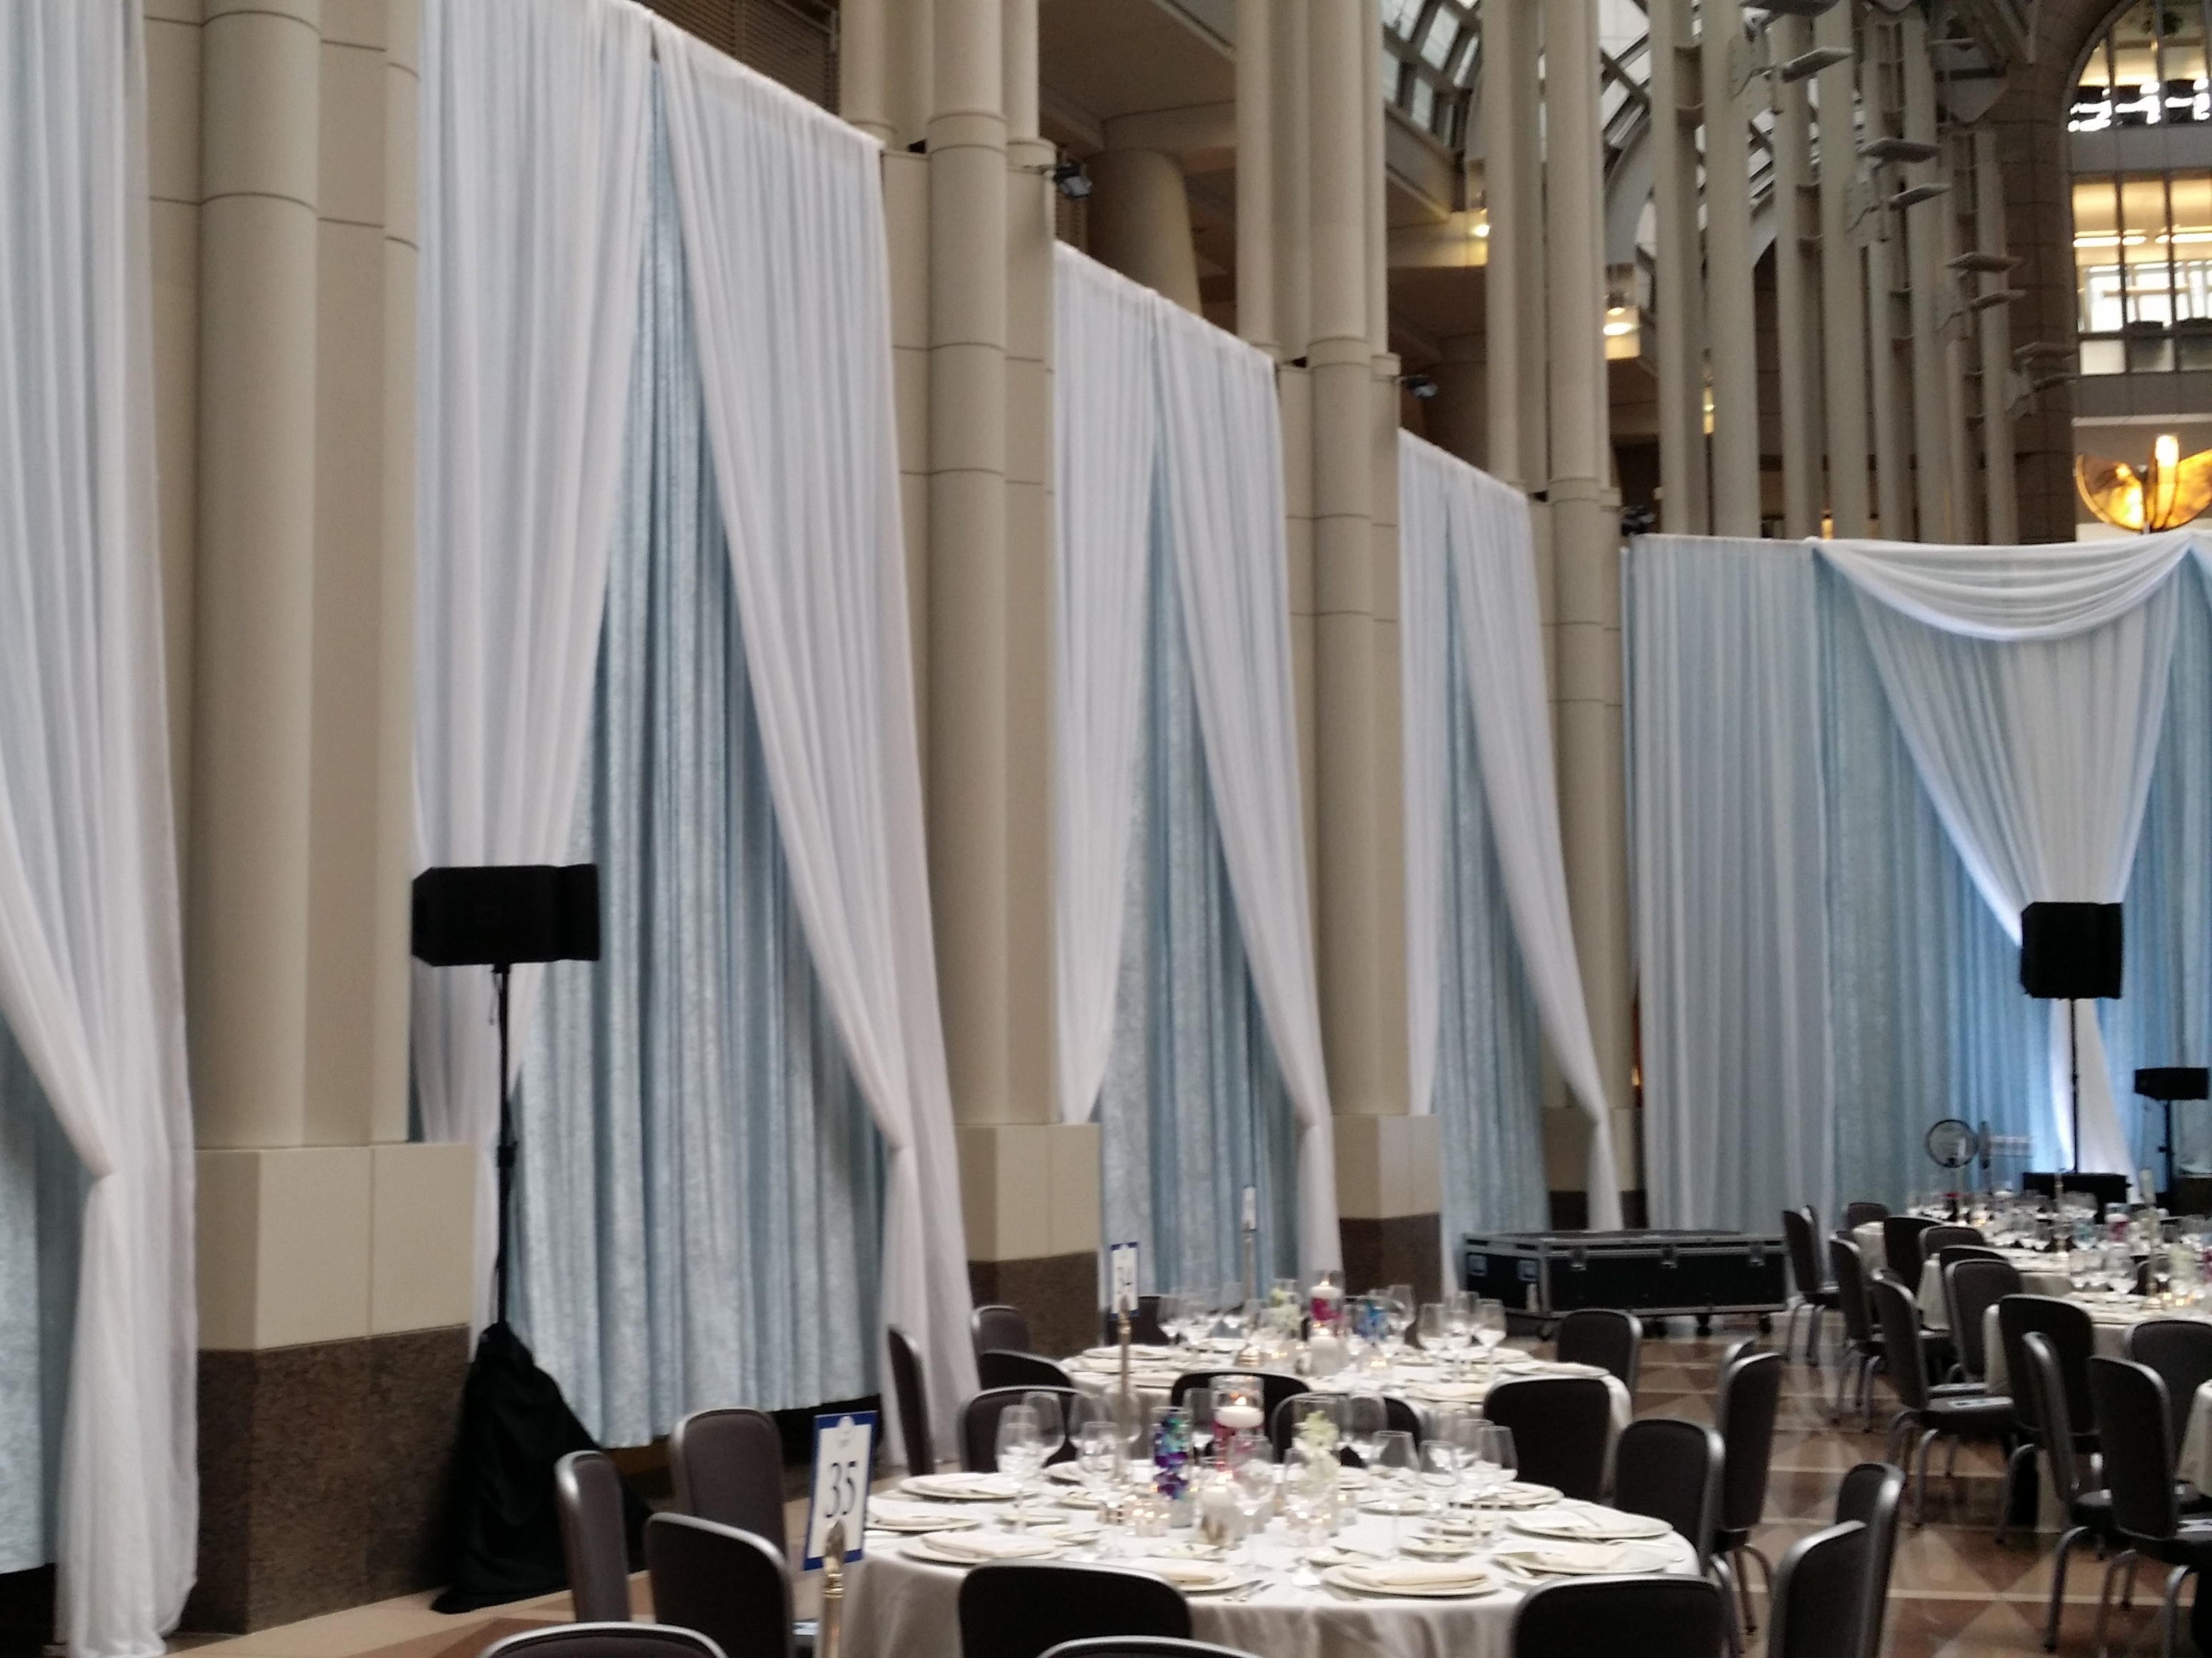 to make how and pipe for star crystal drapes drape gardens draping a tulum wedding smsender ceiling co